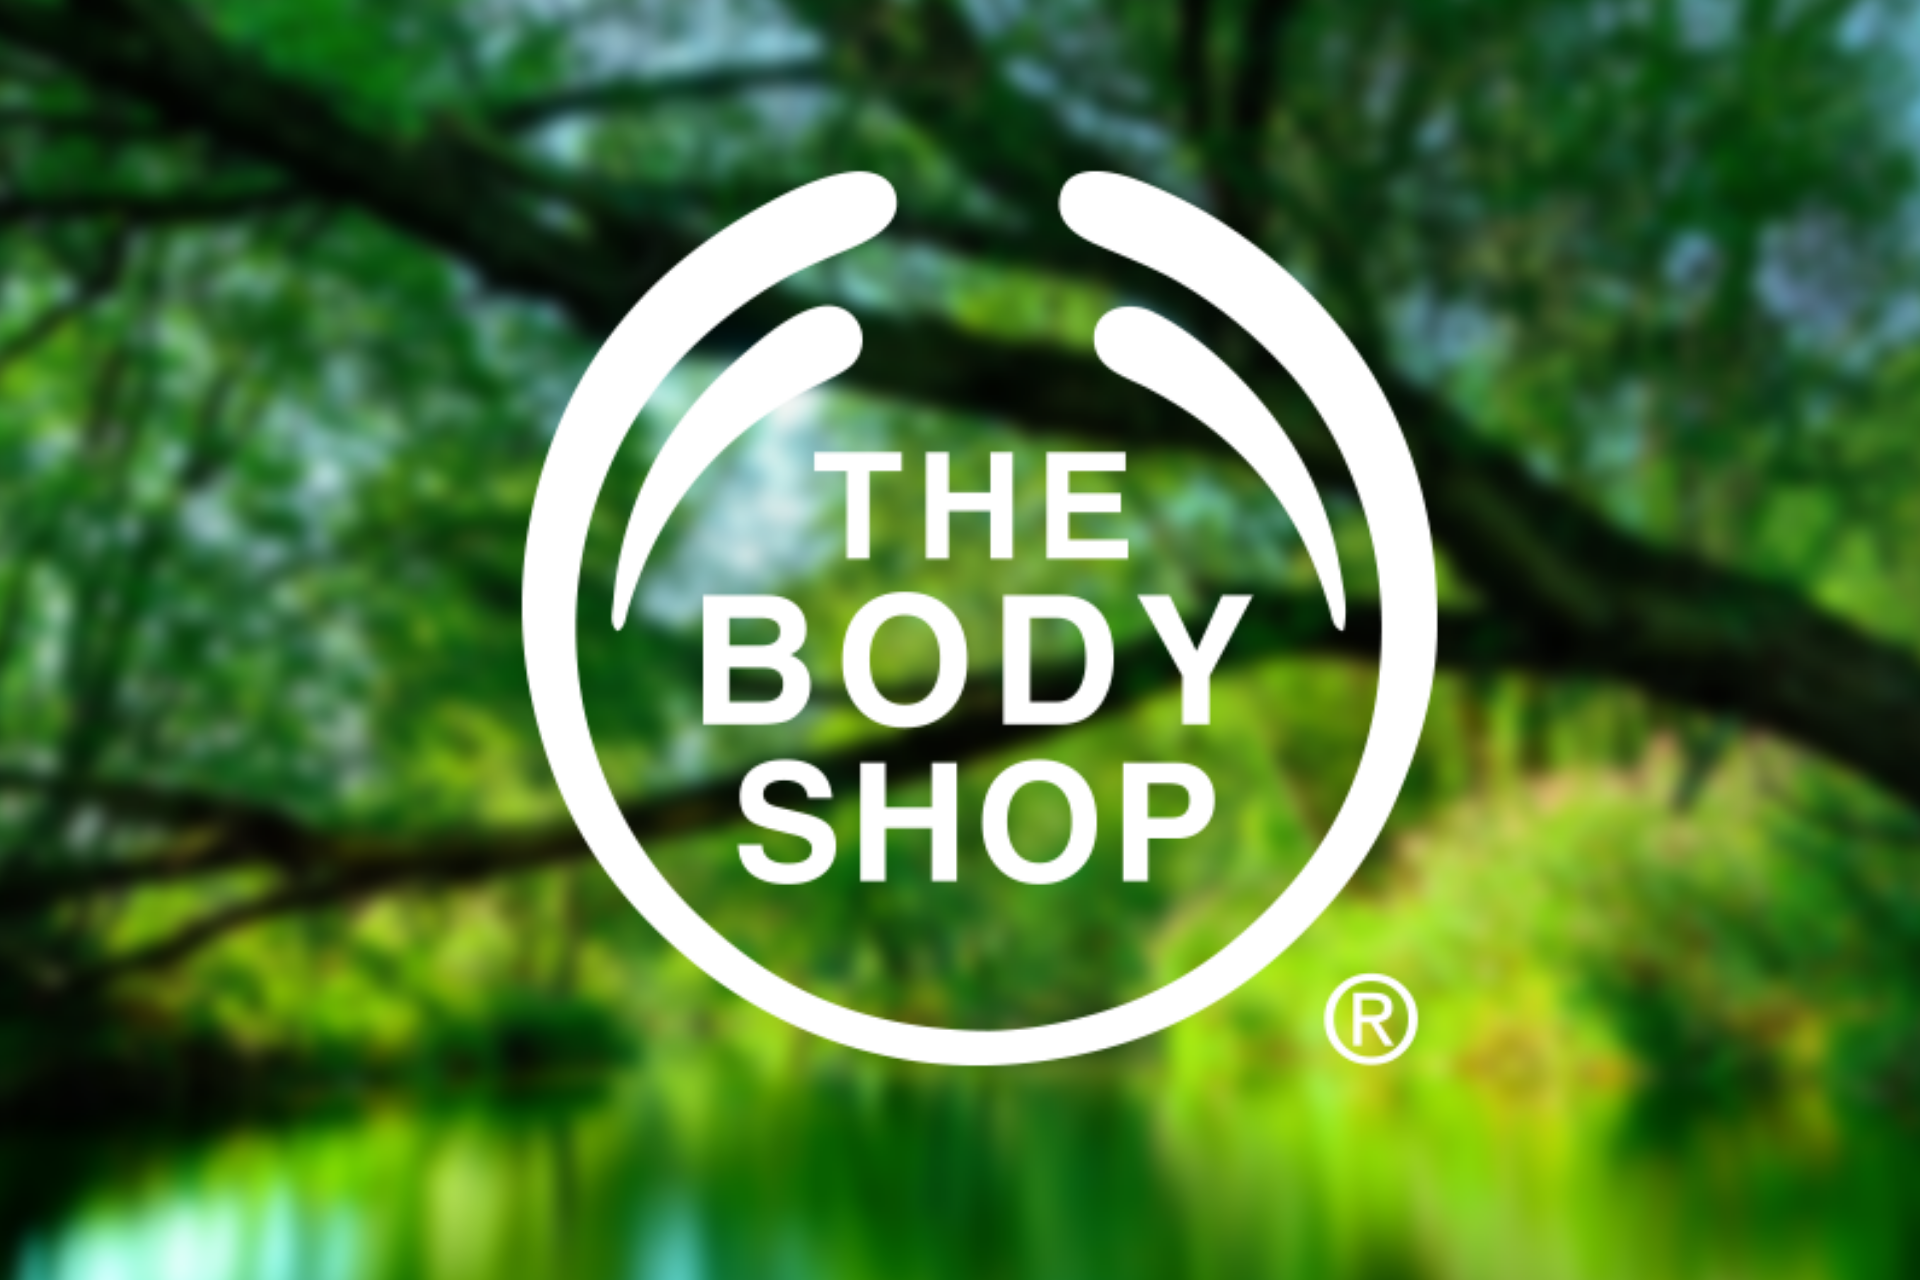 The Body Shop Brand Store